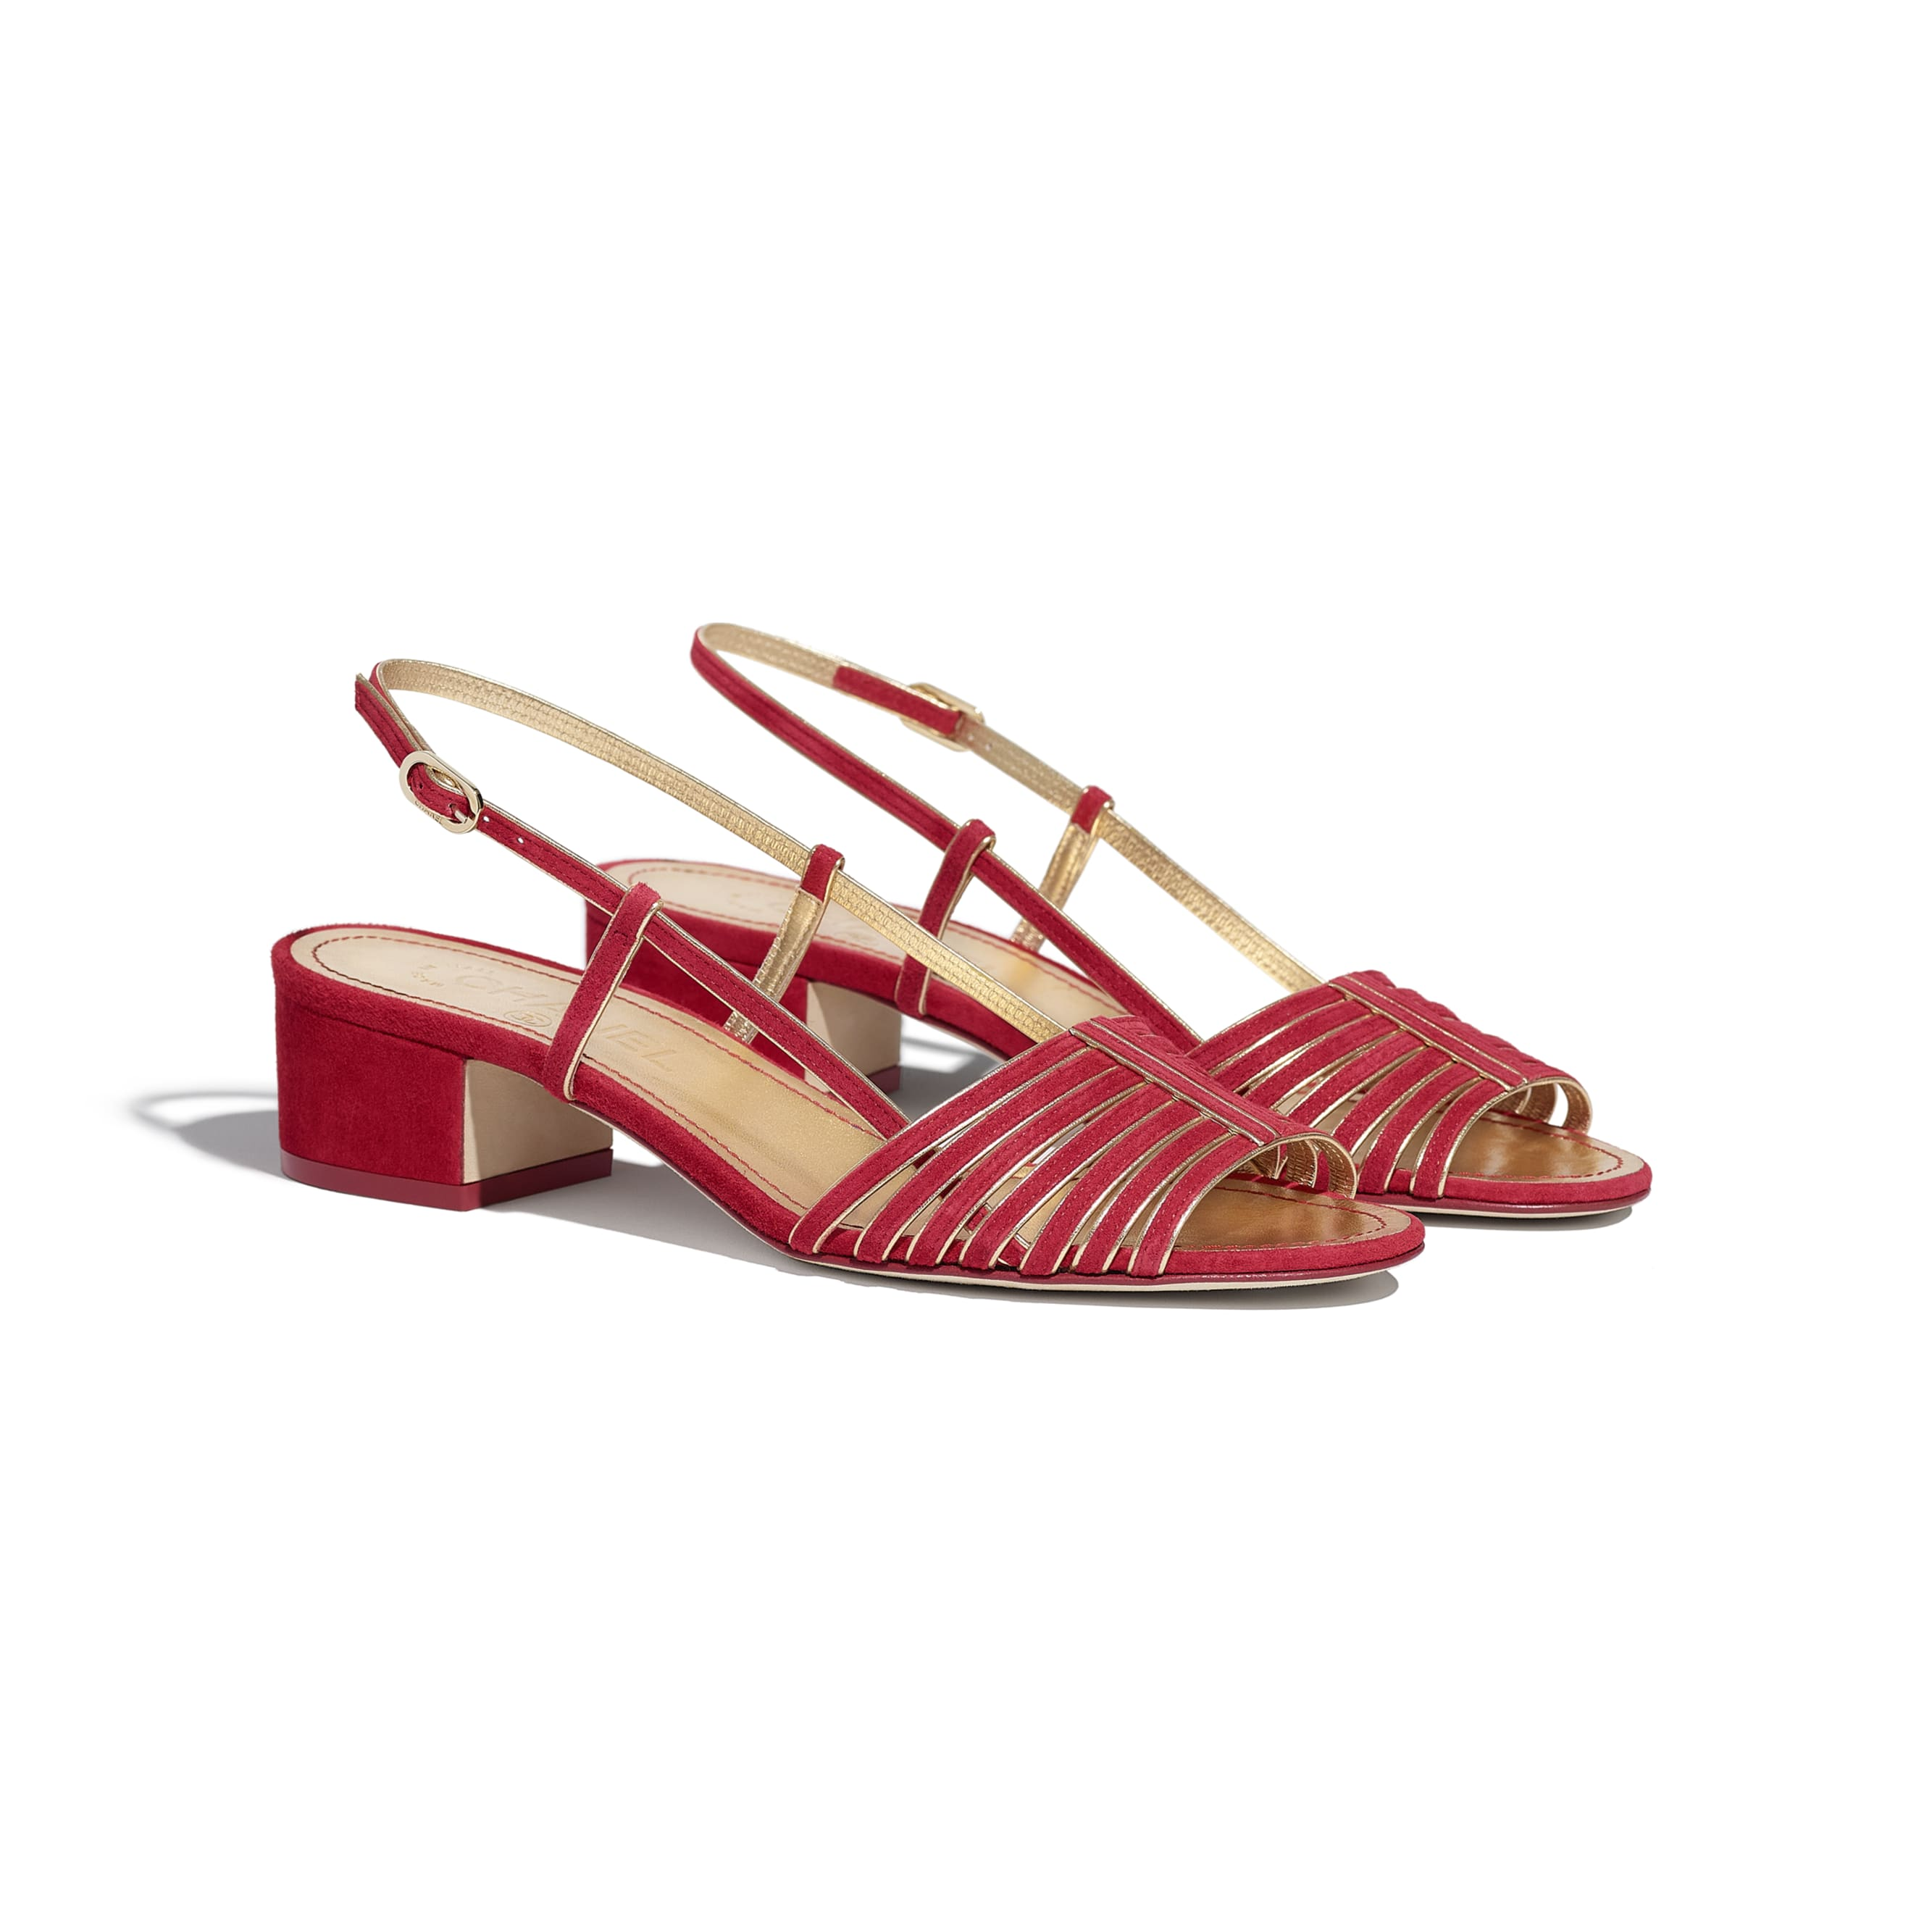 Sandals - Red & Gold - Suede Kidskin - CHANEL - Alternative view - see standard sized version